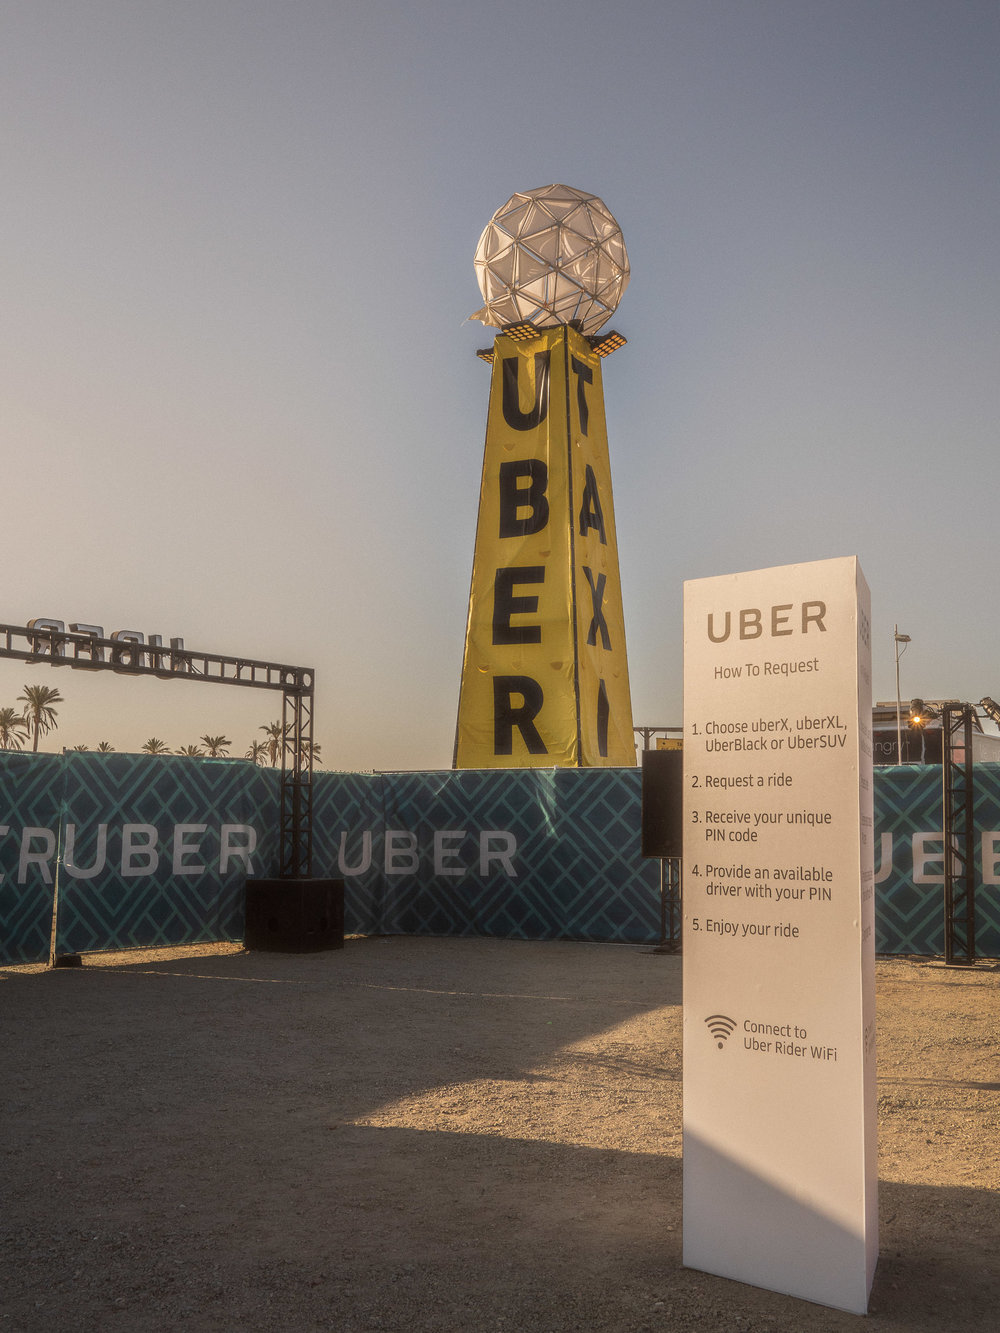 Uber's signage on-site are larger-than-life. It's hard to miss!